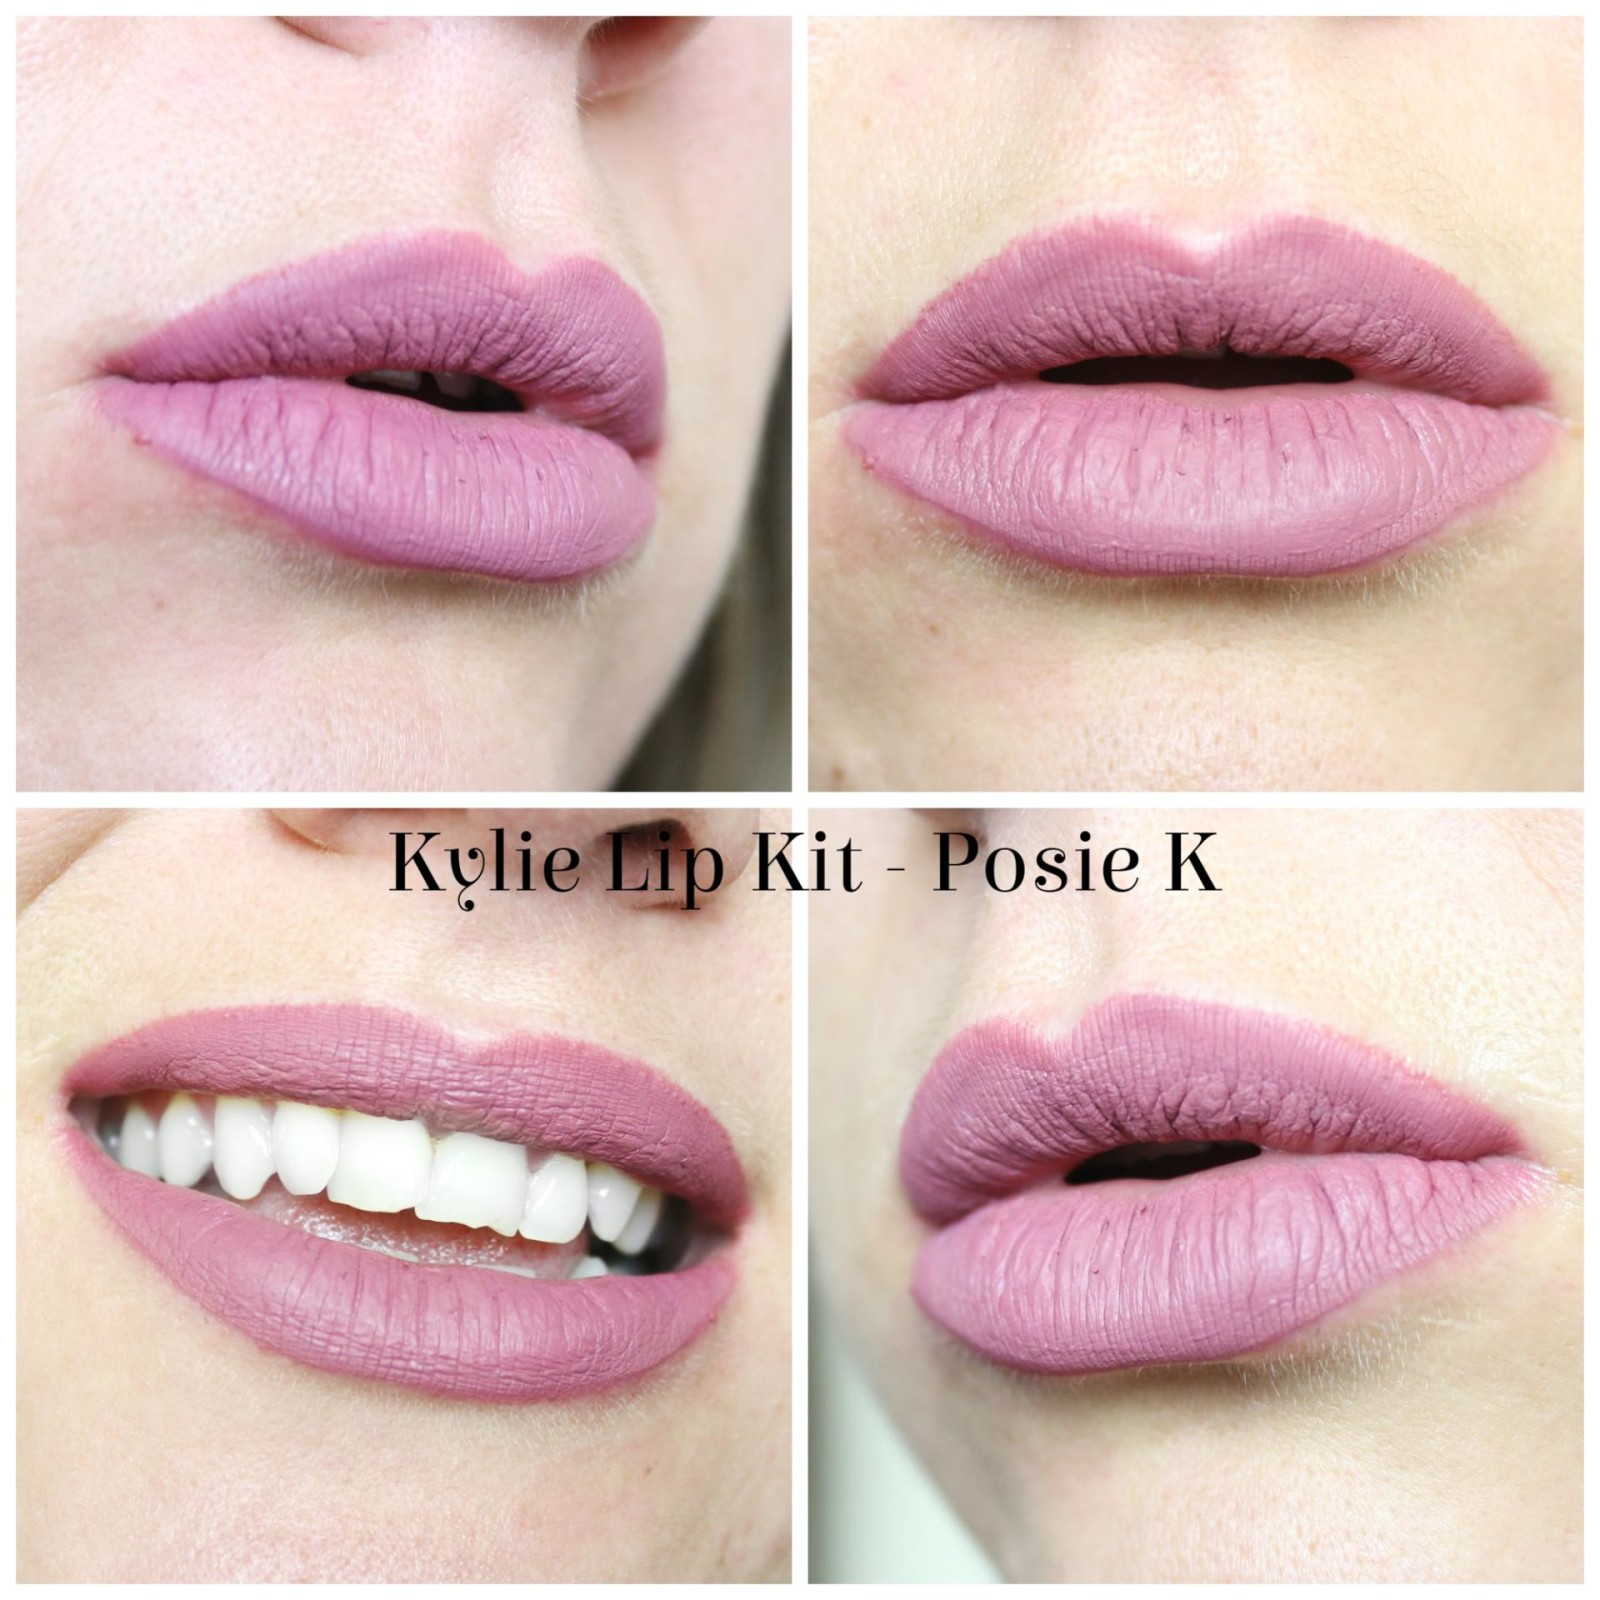 Kylie Lip Kit in Posie K